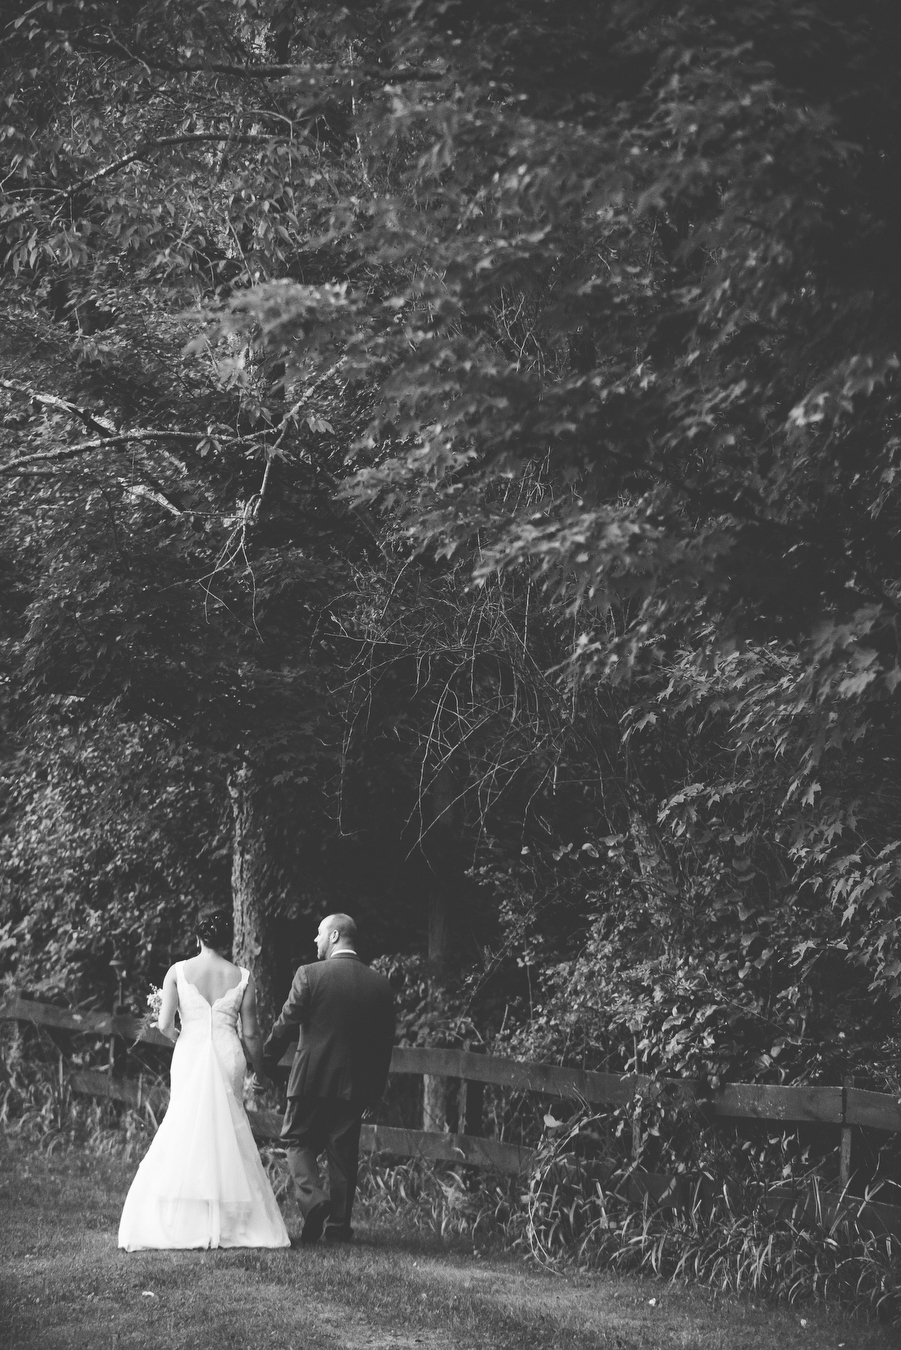 Karlo Gesner Photography Chanteclaire Farm Deep Creek Lake Lancaster Philadelphia Wedding Photographer 0020.JPG